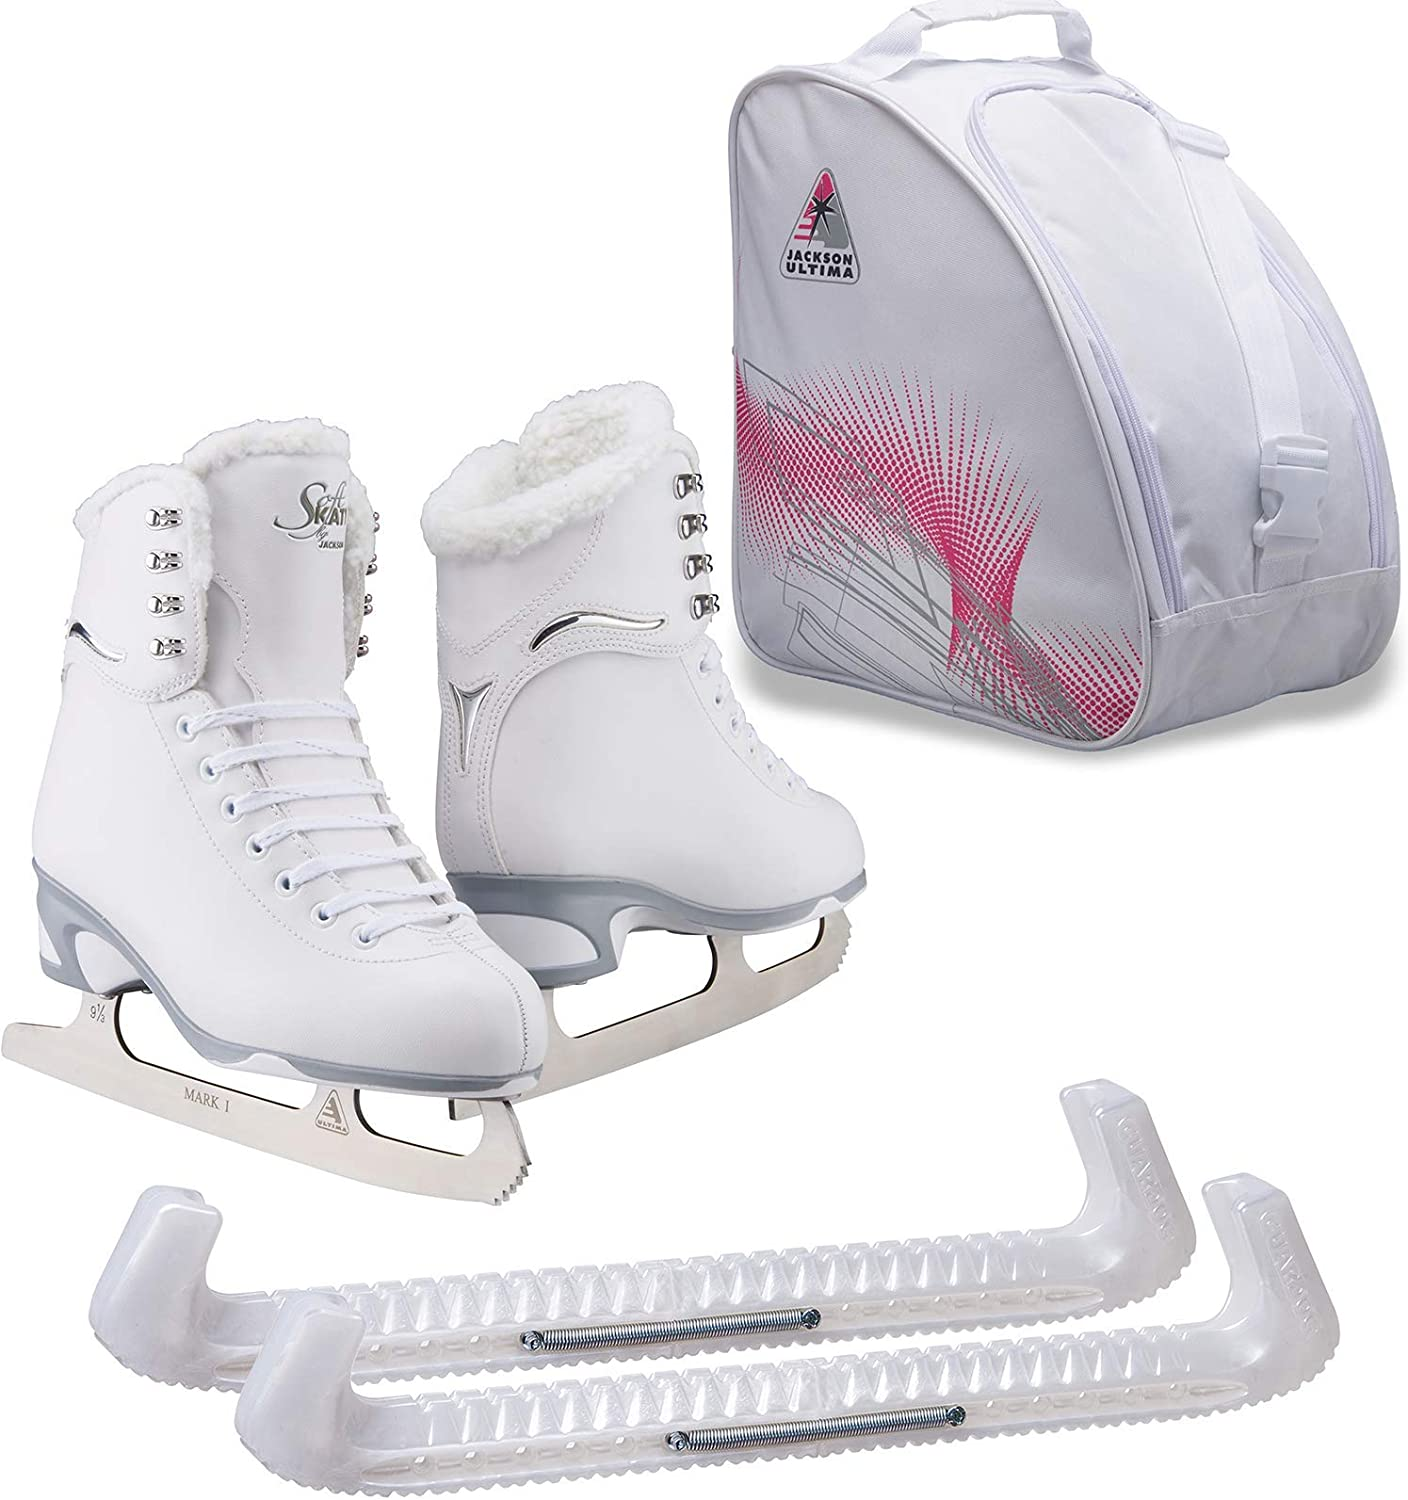 Jackson Ultima Finesse JS180 JS181 Ranking integrated 1st place Ice Figure f JS184 Max 63% OFF Skates